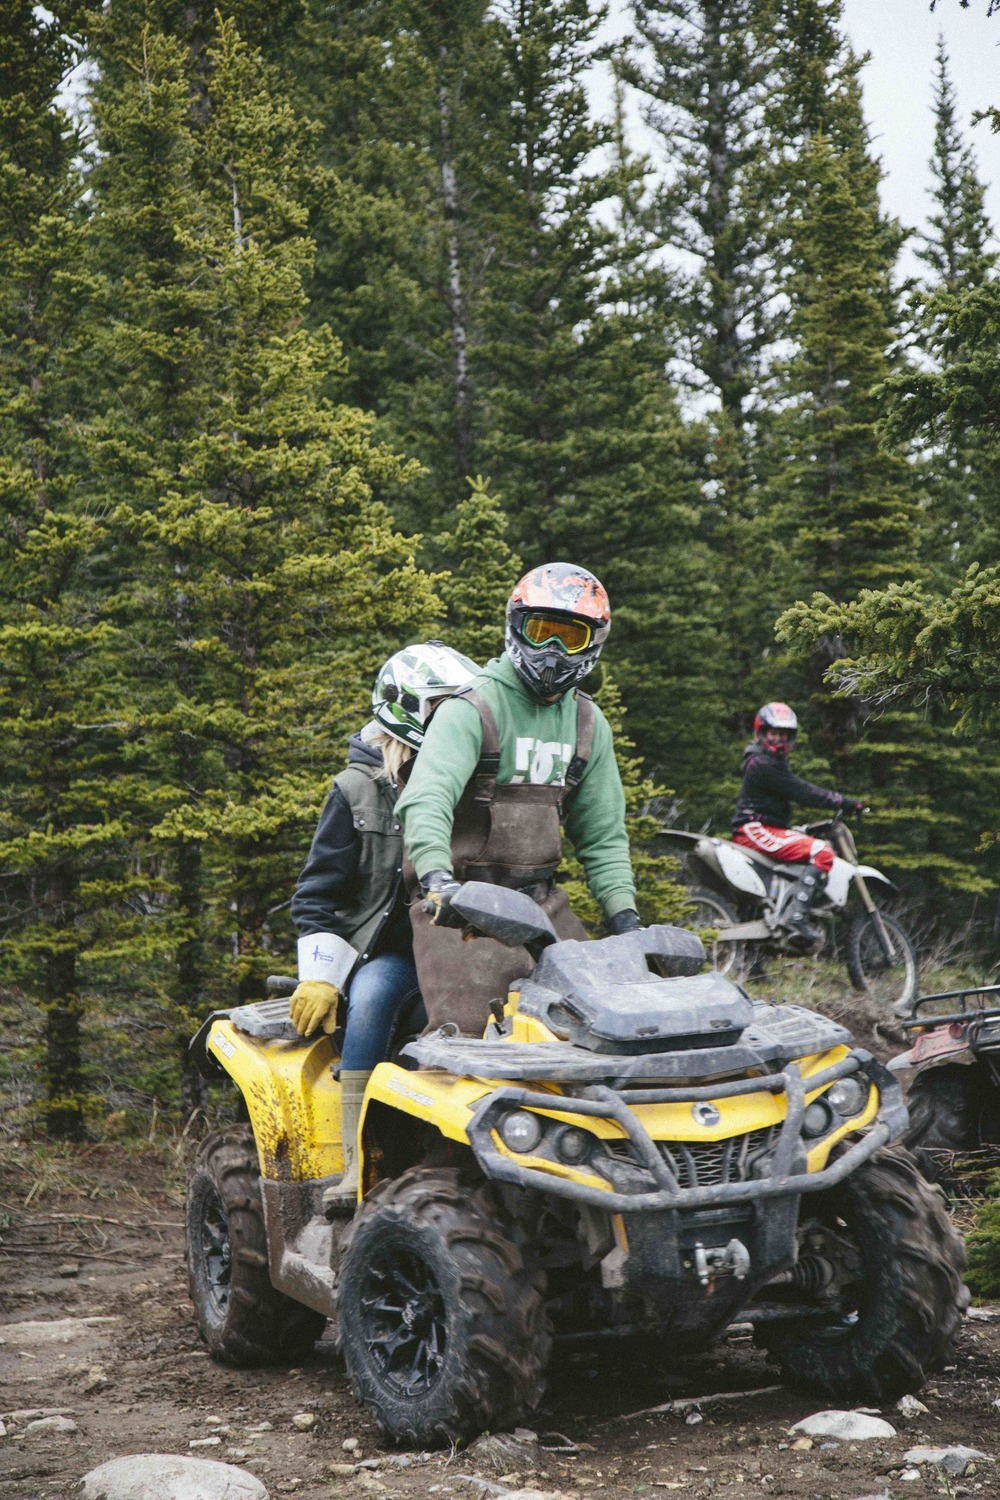 Above: Canadians on dirt bikes and quad bikes in the foothills of the Rocky Mountains, west of Calgary, Alberta.